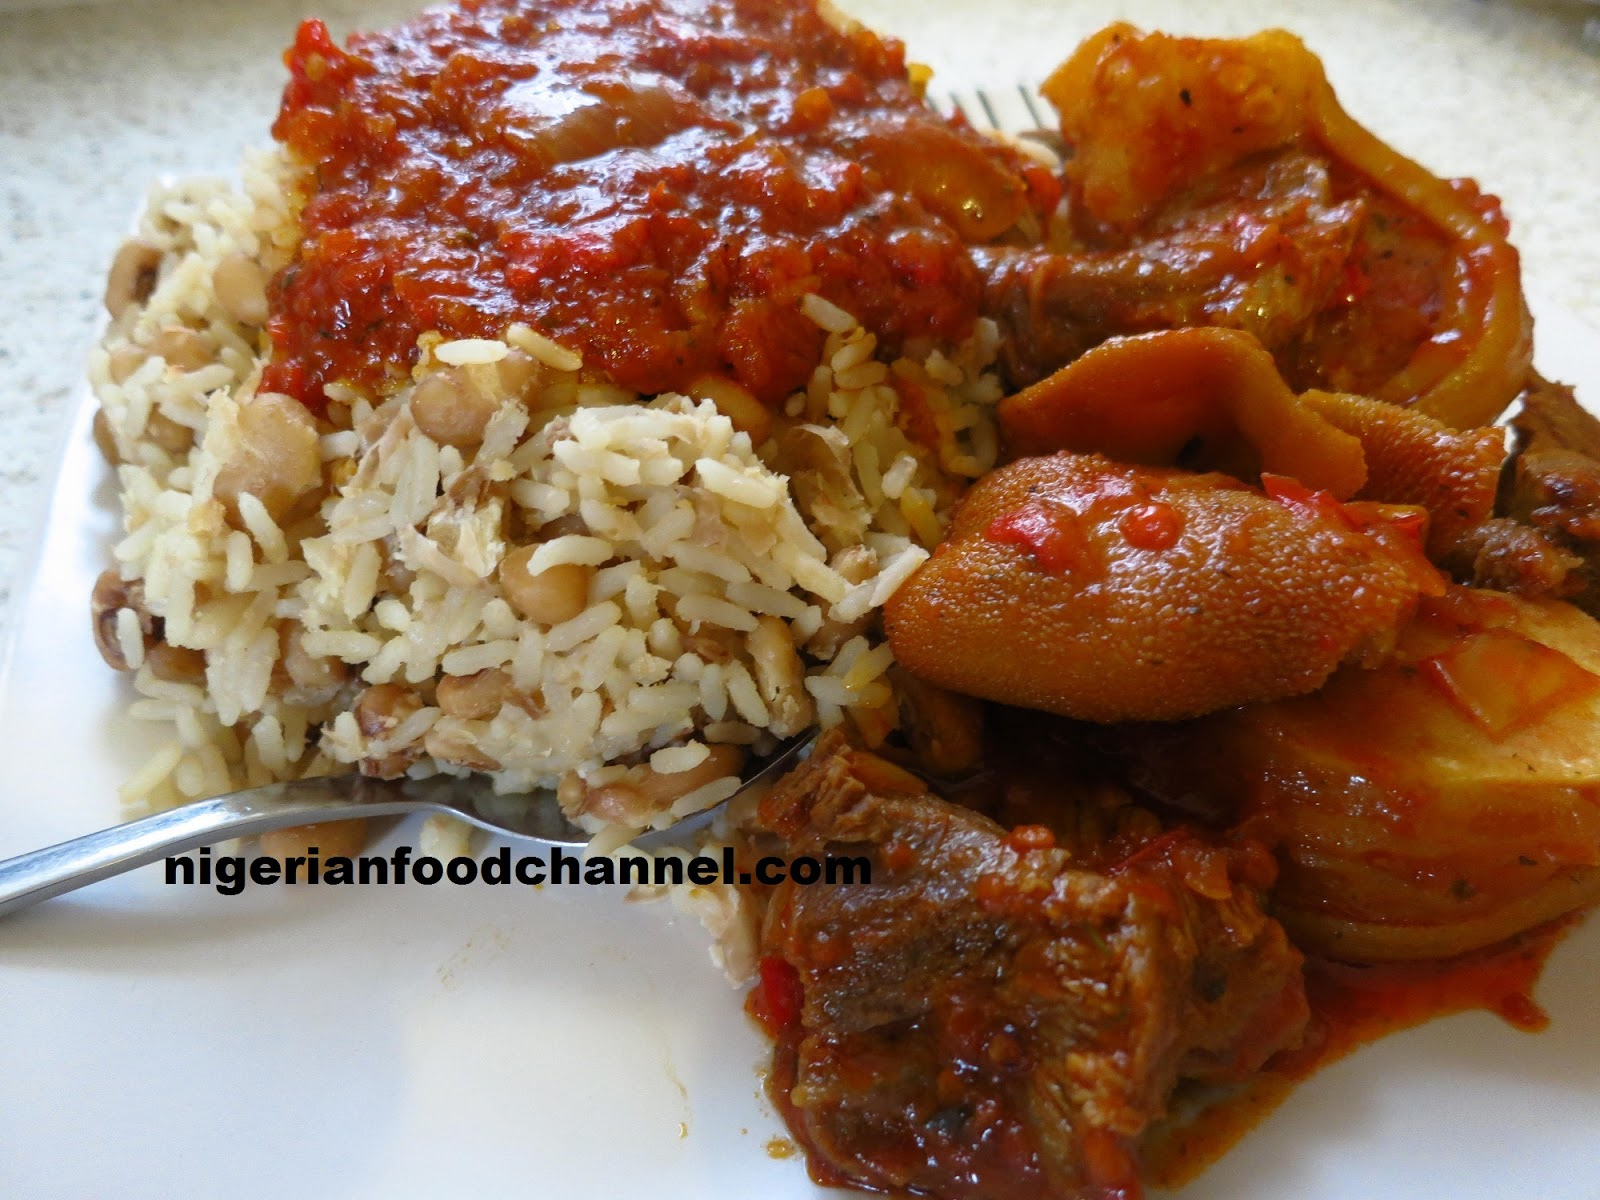 How to cook nigerian rice and beans nigerian food recipes how to cook nigerian rice and beans nigerian food recipes nigerian food channel dishes cuisine delicacies nigerian food channel dishes cuisine forumfinder Choice Image